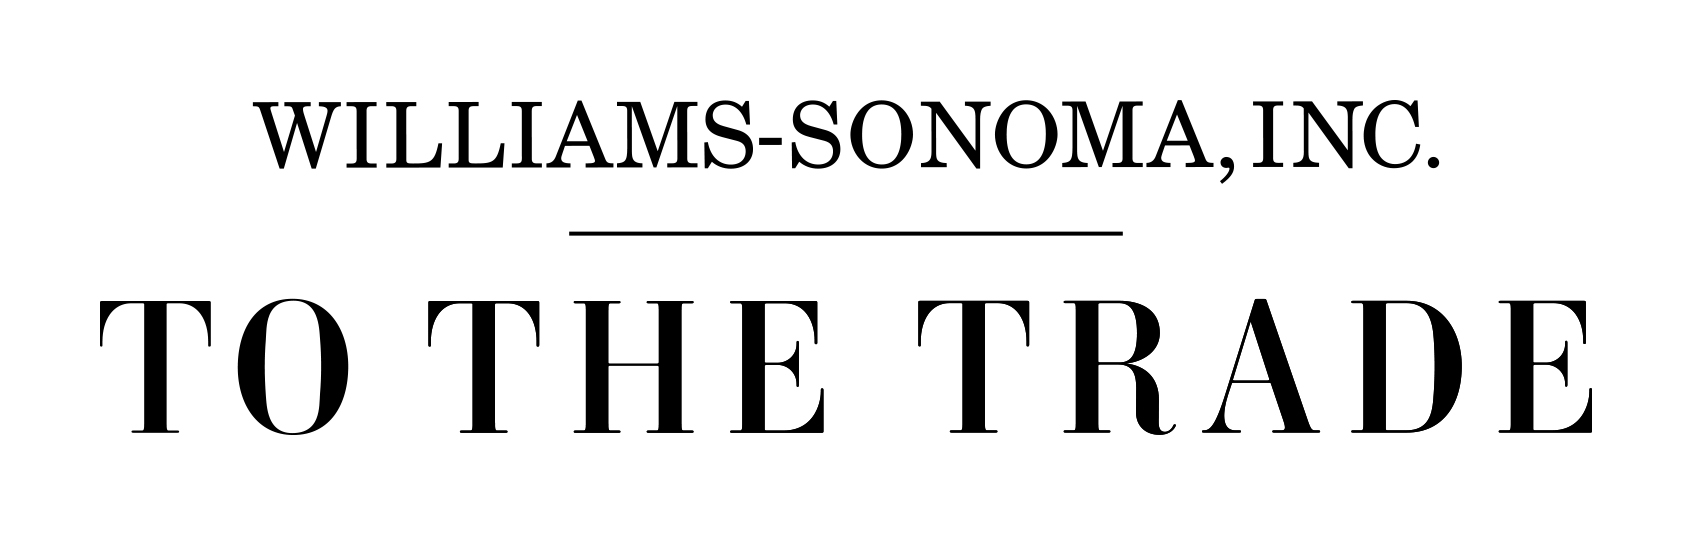 Williams-Sonoma, Inc.